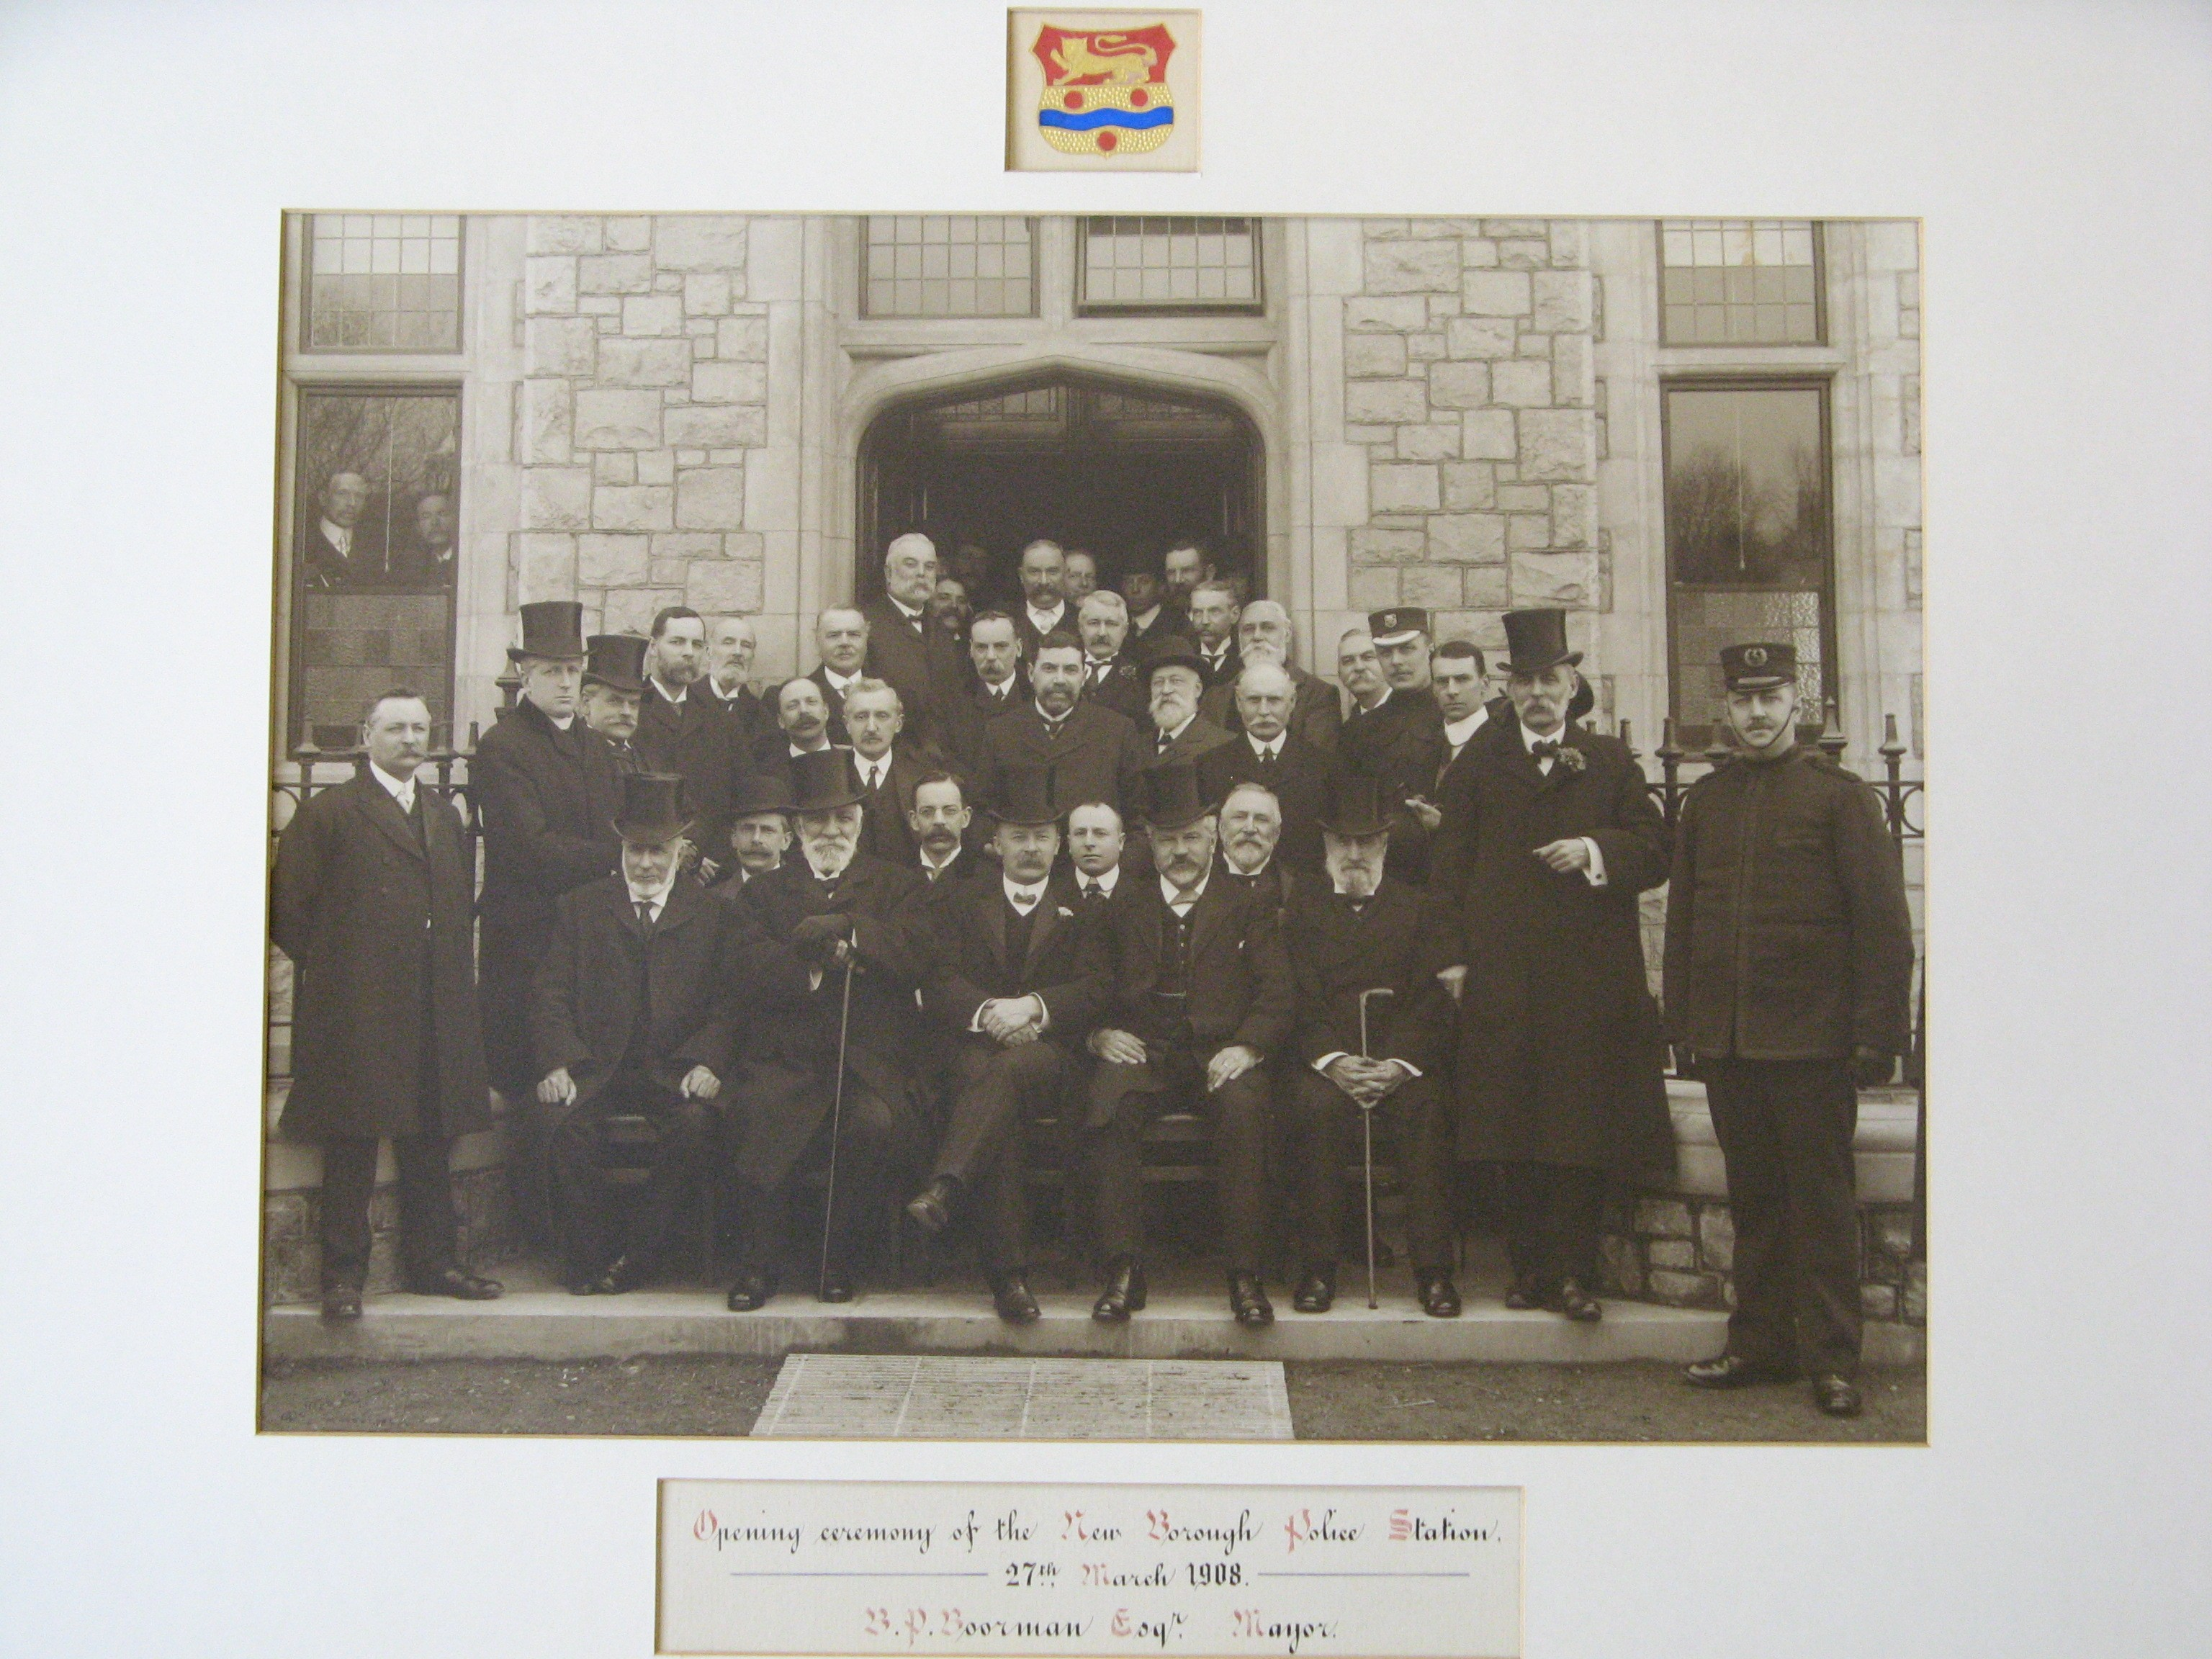 100 years at Maidstone Police Station